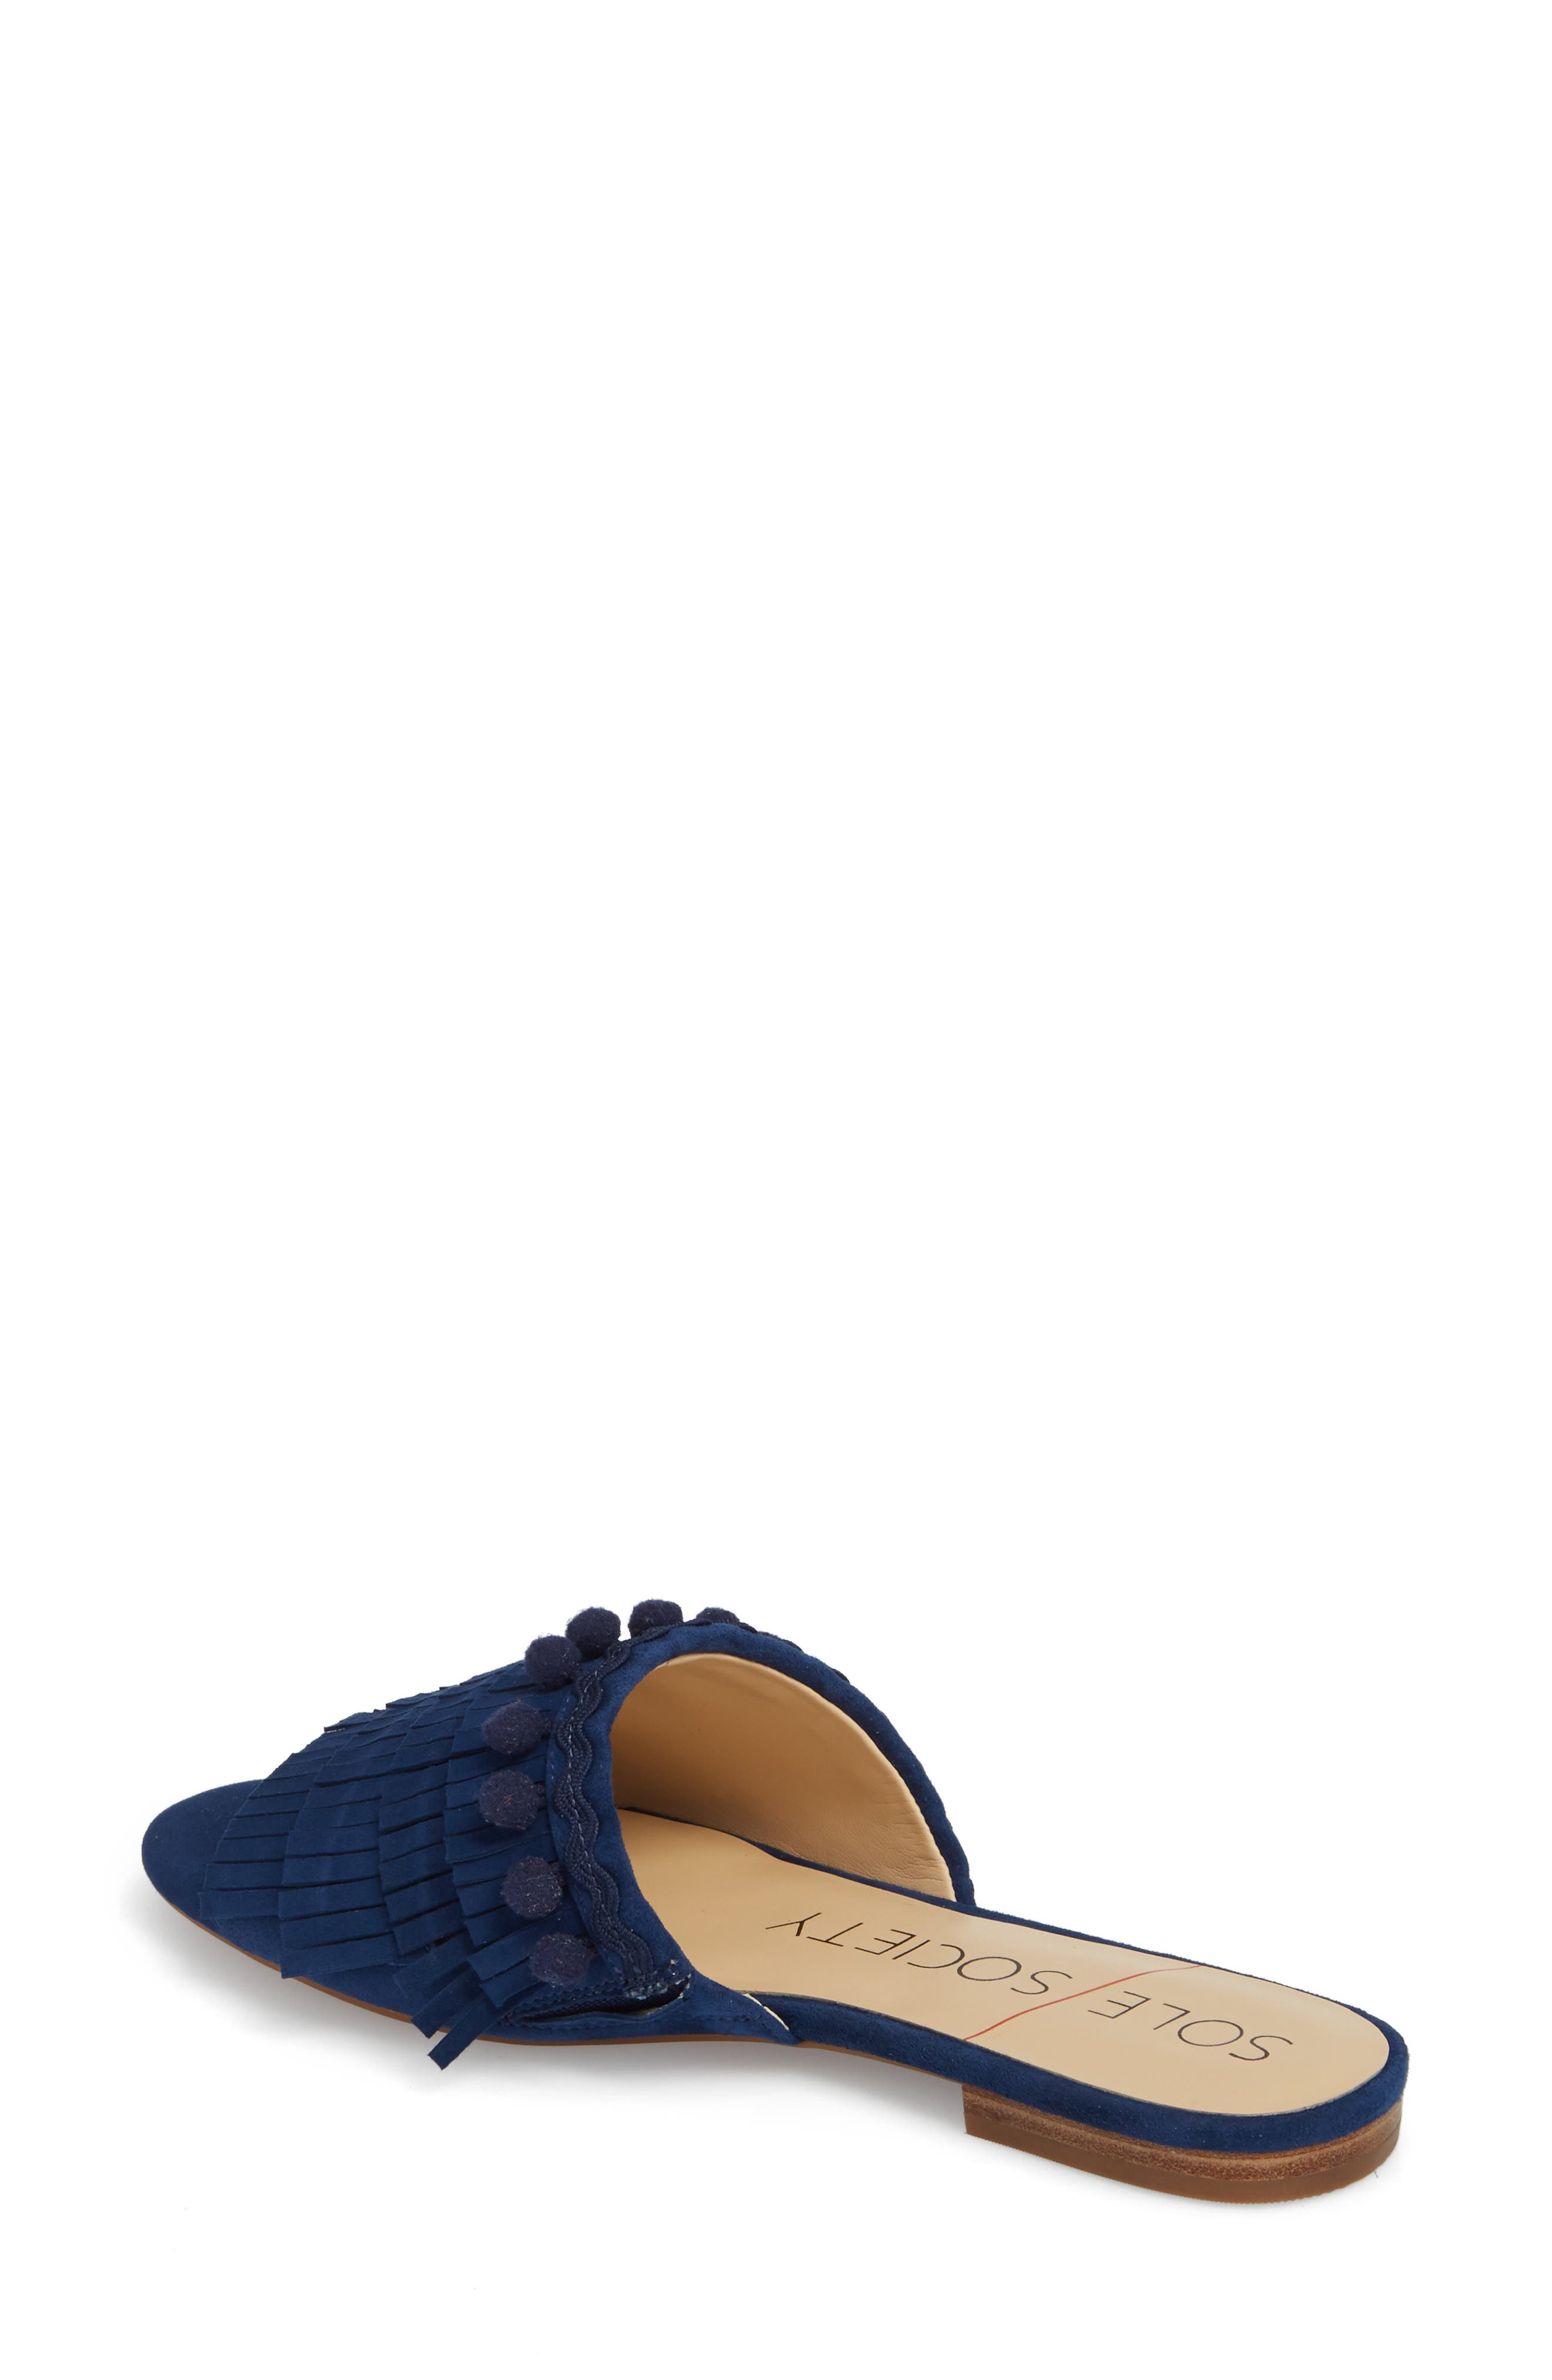 Malina Mule,                             Alternate thumbnail 2, color,                             NAVY SUEDE